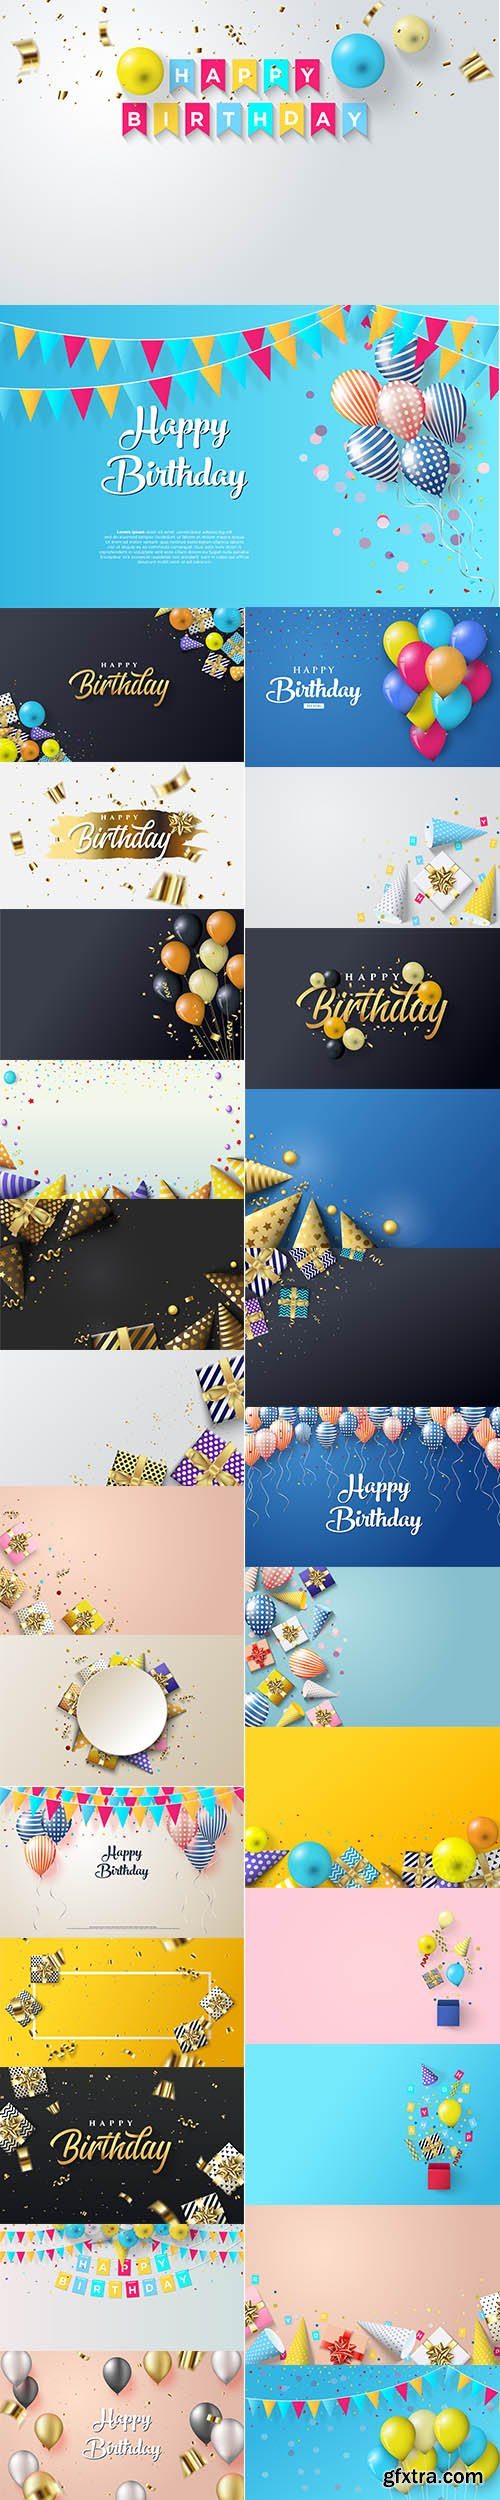 Birthday Party with Gift Box Premium Illustrations Vector Set